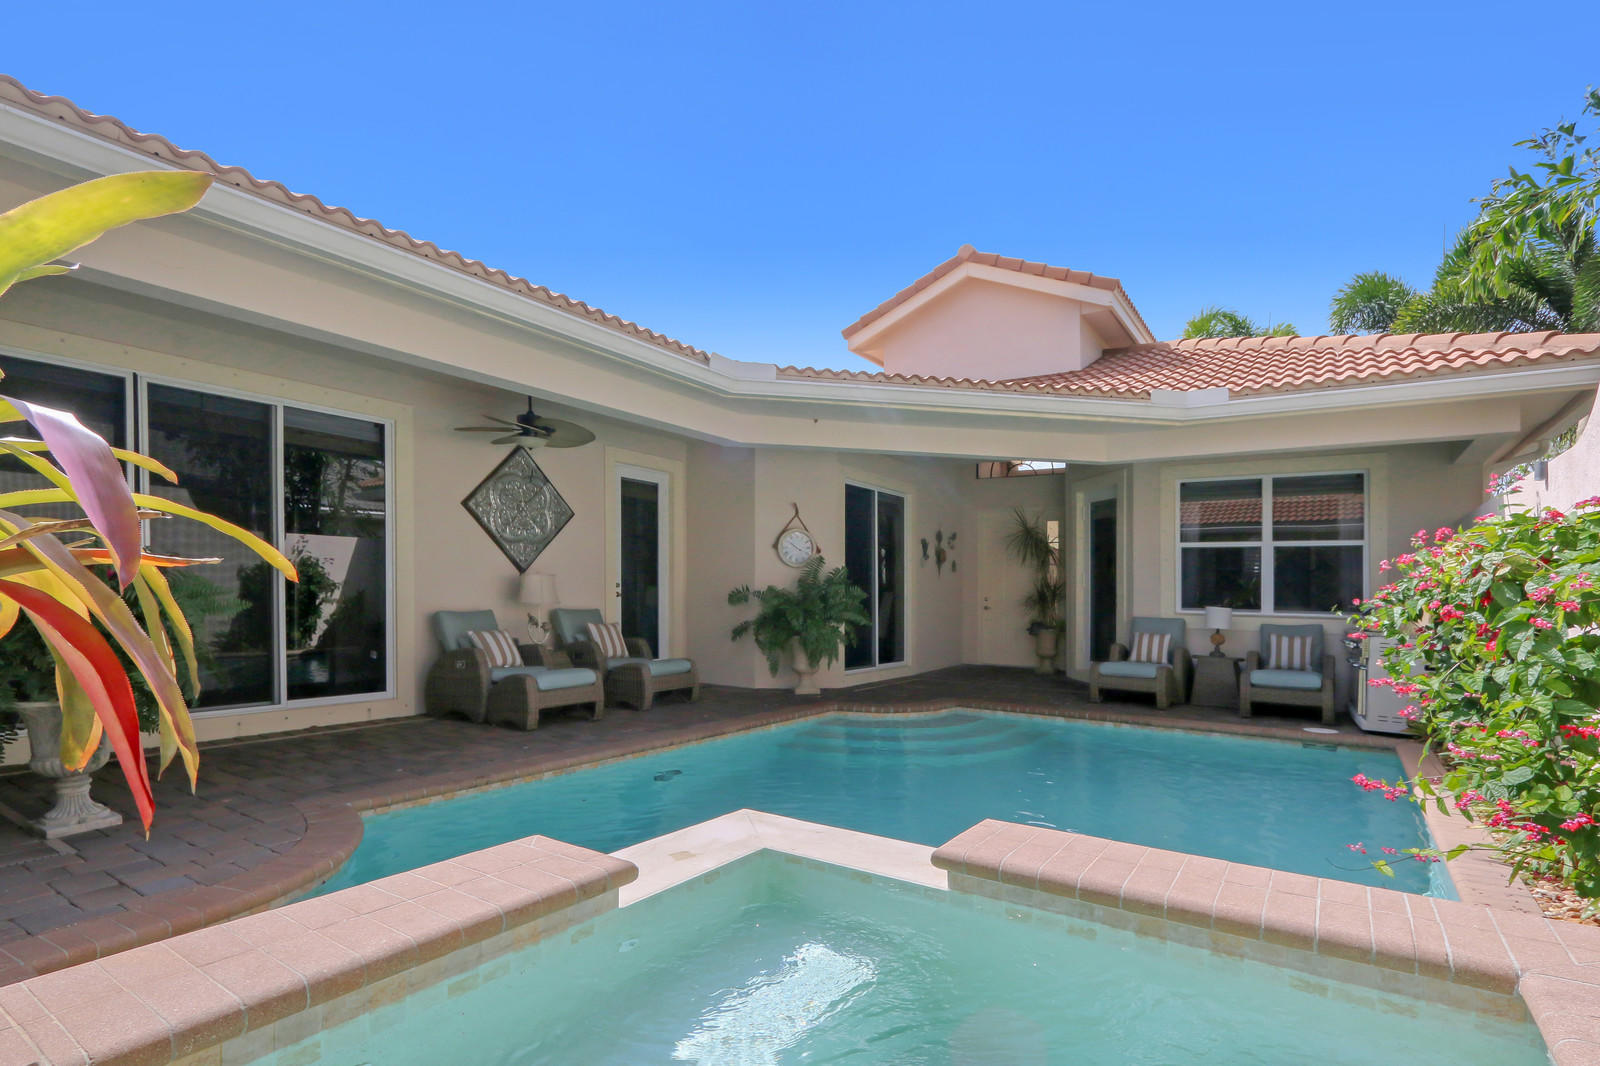 New Home for sale at 156 Carina Drive in Jupiter